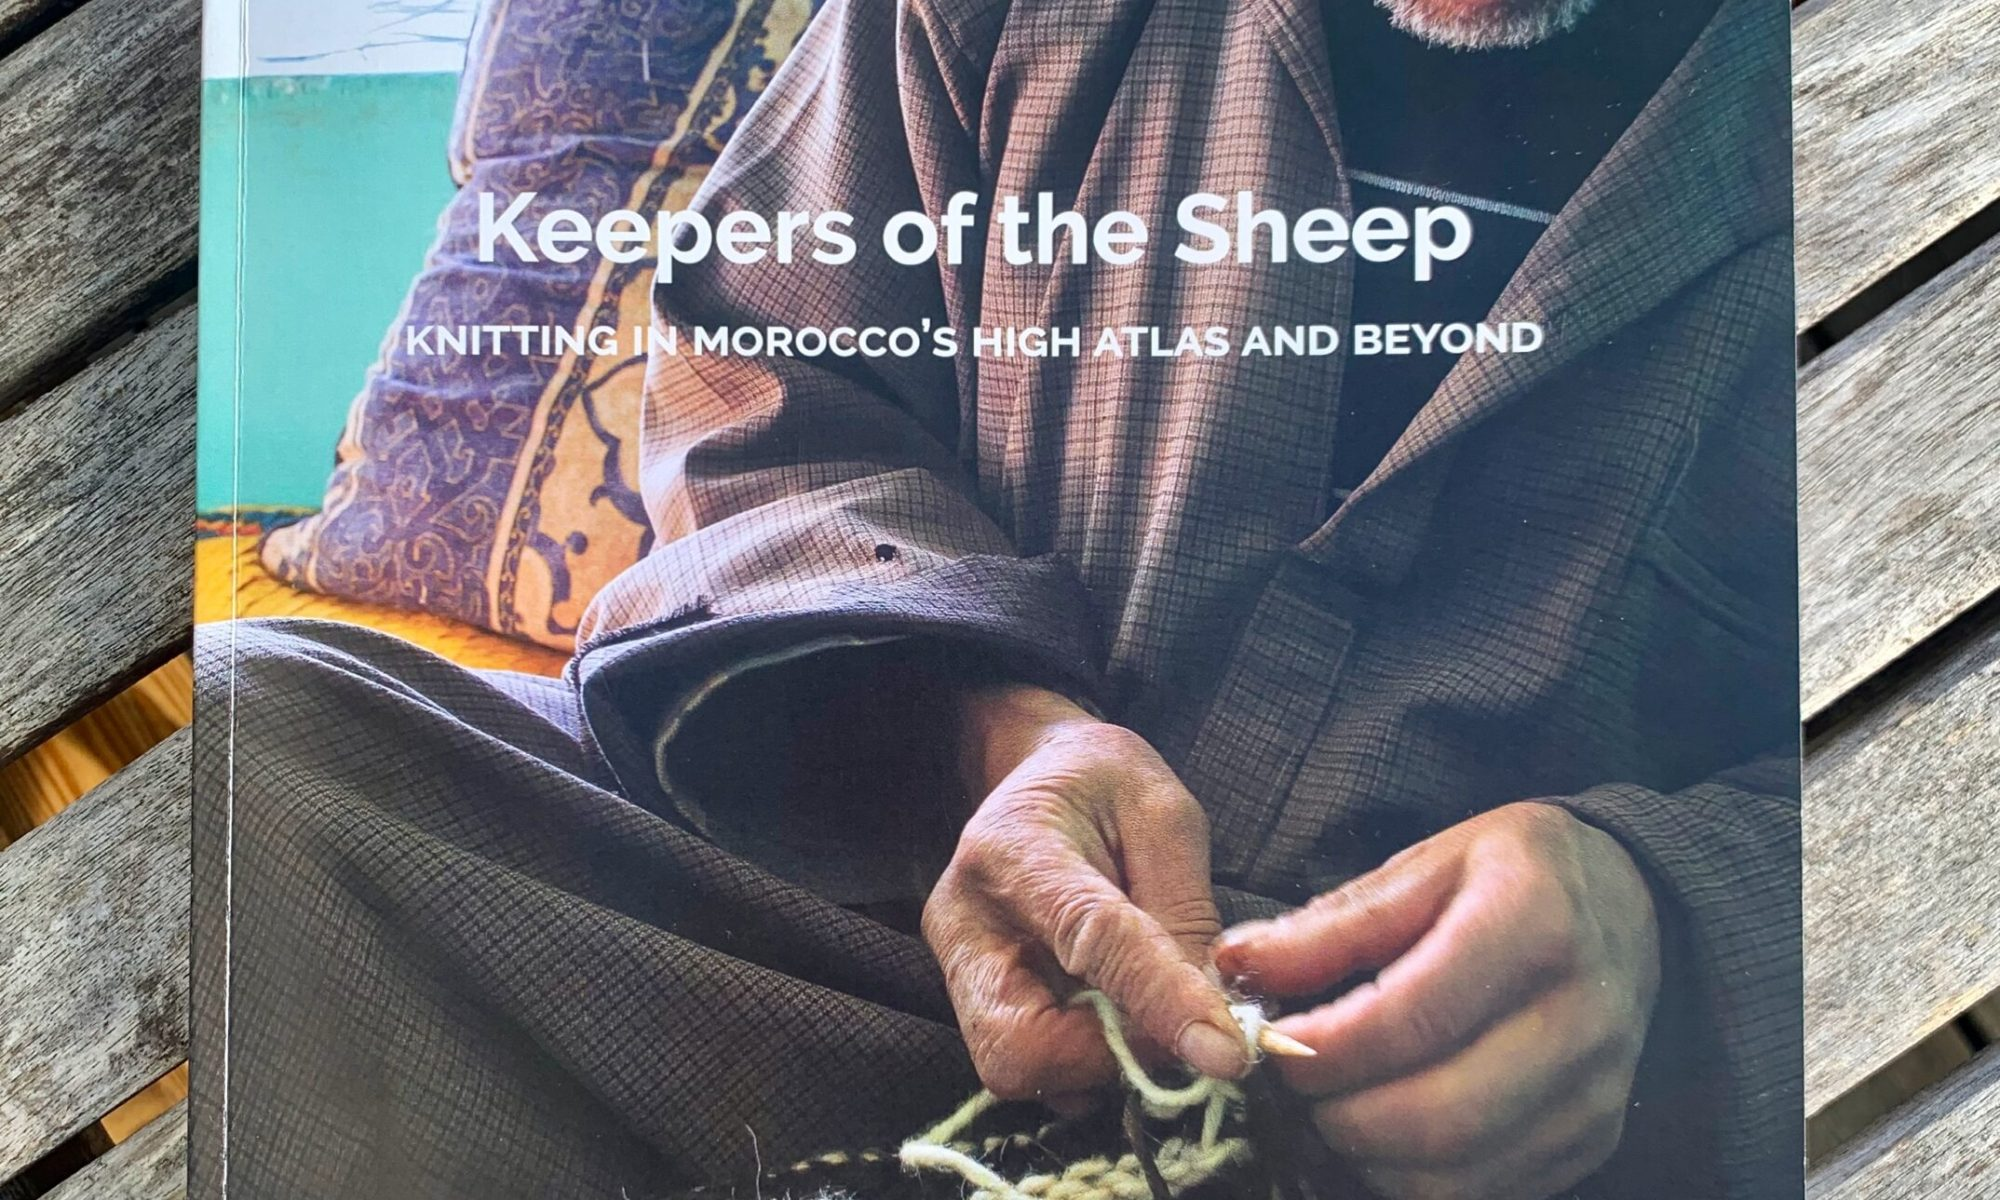 Keepers of the sheep – knitting Morocco's High Atlas and beyond, by Irene Waggener with Muah Ahansali, Hussein Mardi, Muah n'Ait Tabatoot and Noura Eddylymy. Photo published with permission from the author.